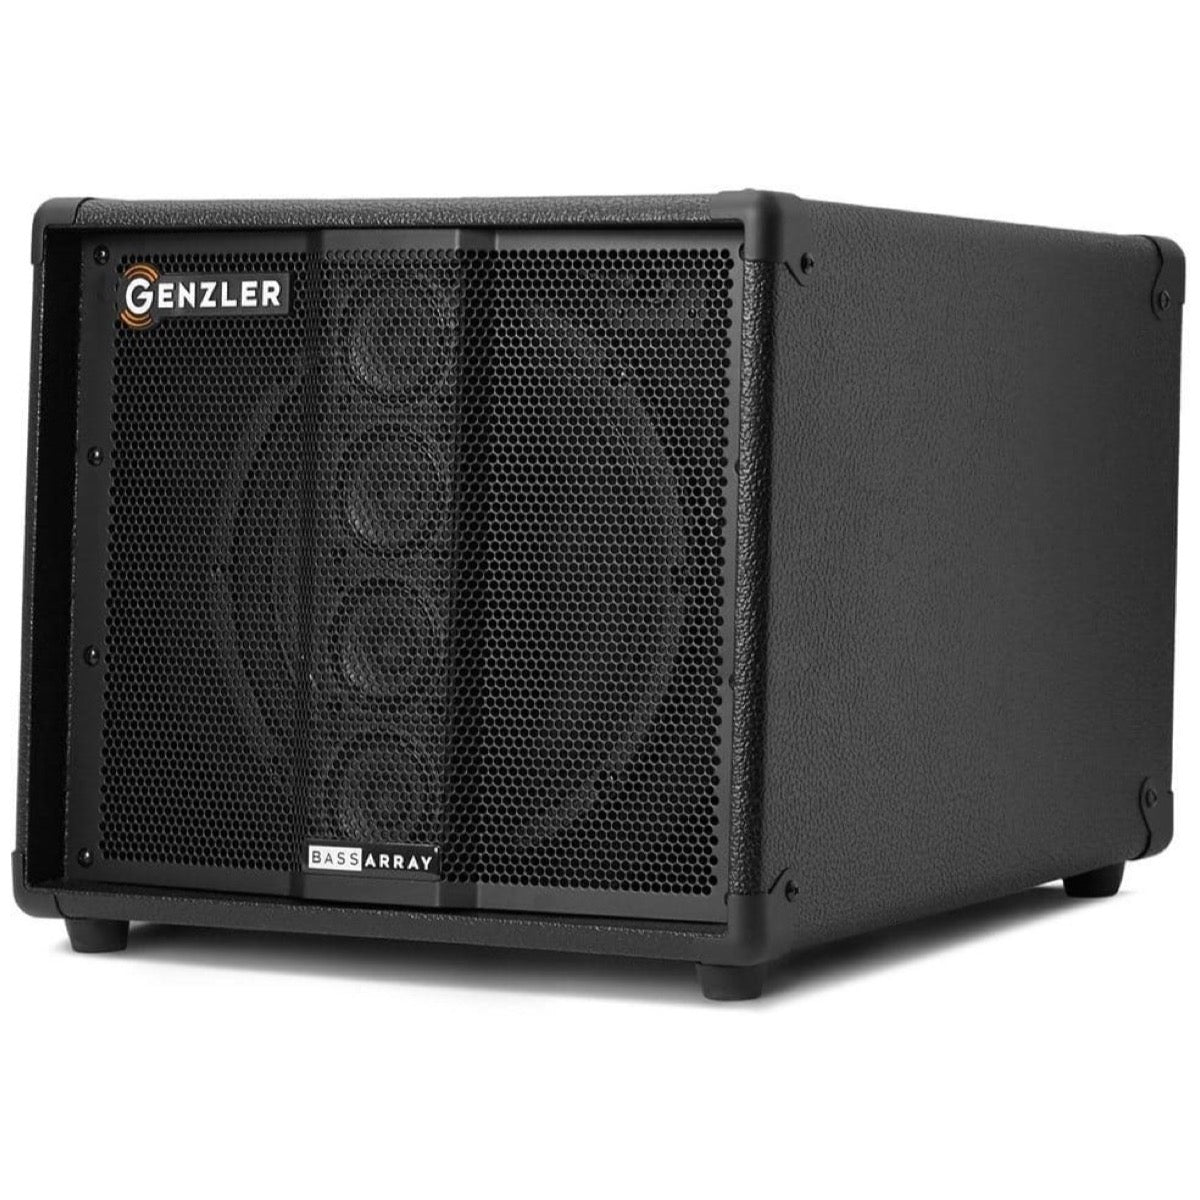 Genzler Bass Array 10-2 Bass Speaker Cabinet (250 Watts, 1x10 Inch), 8 Ohms